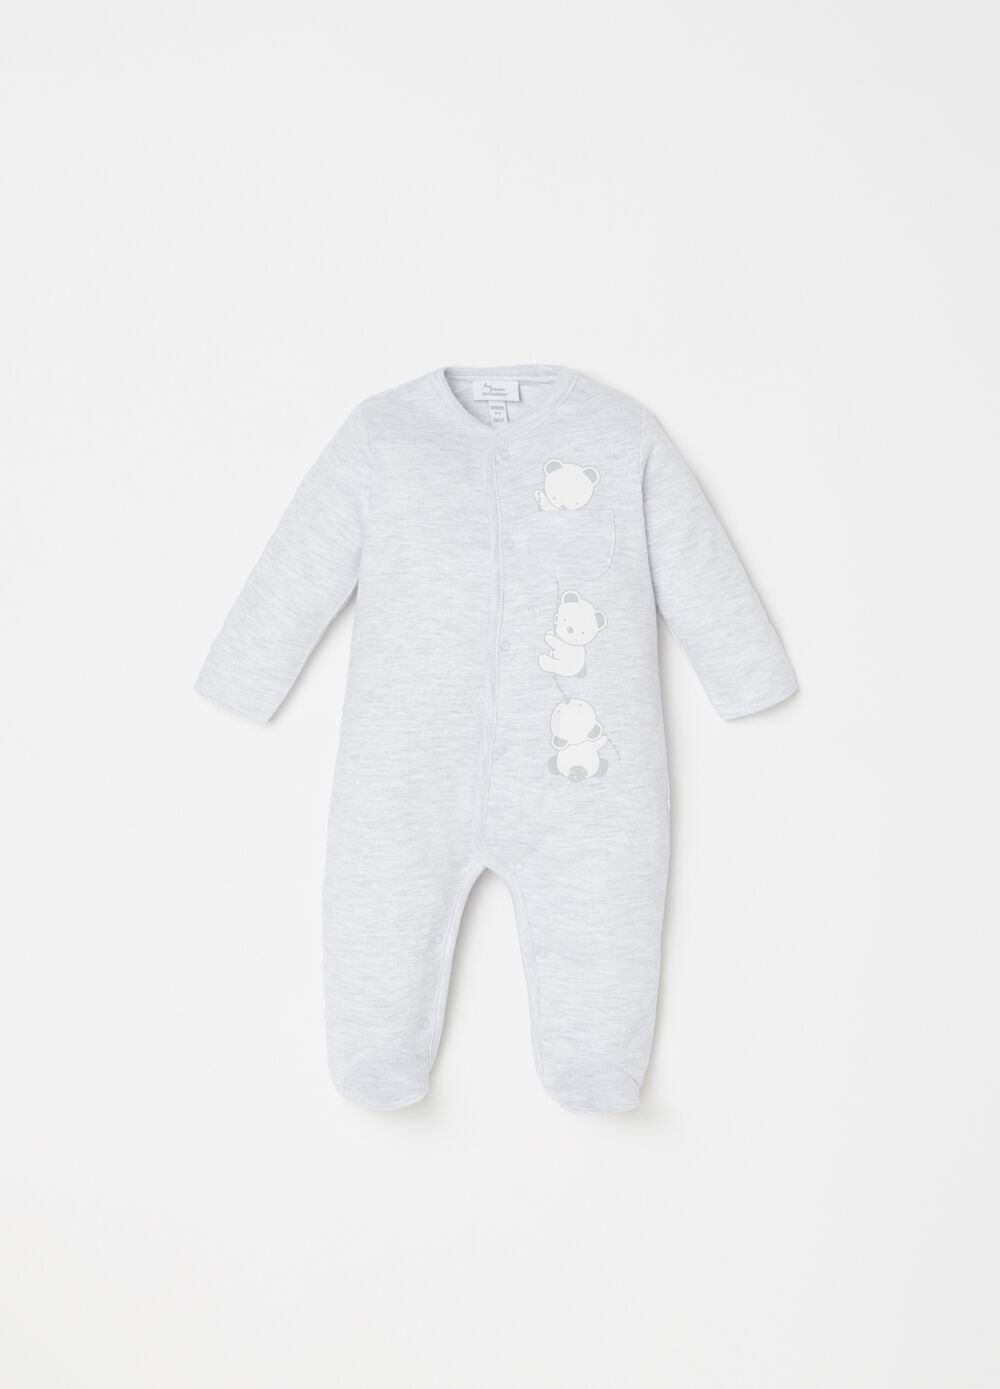 100% cotton mélange onesie with feet